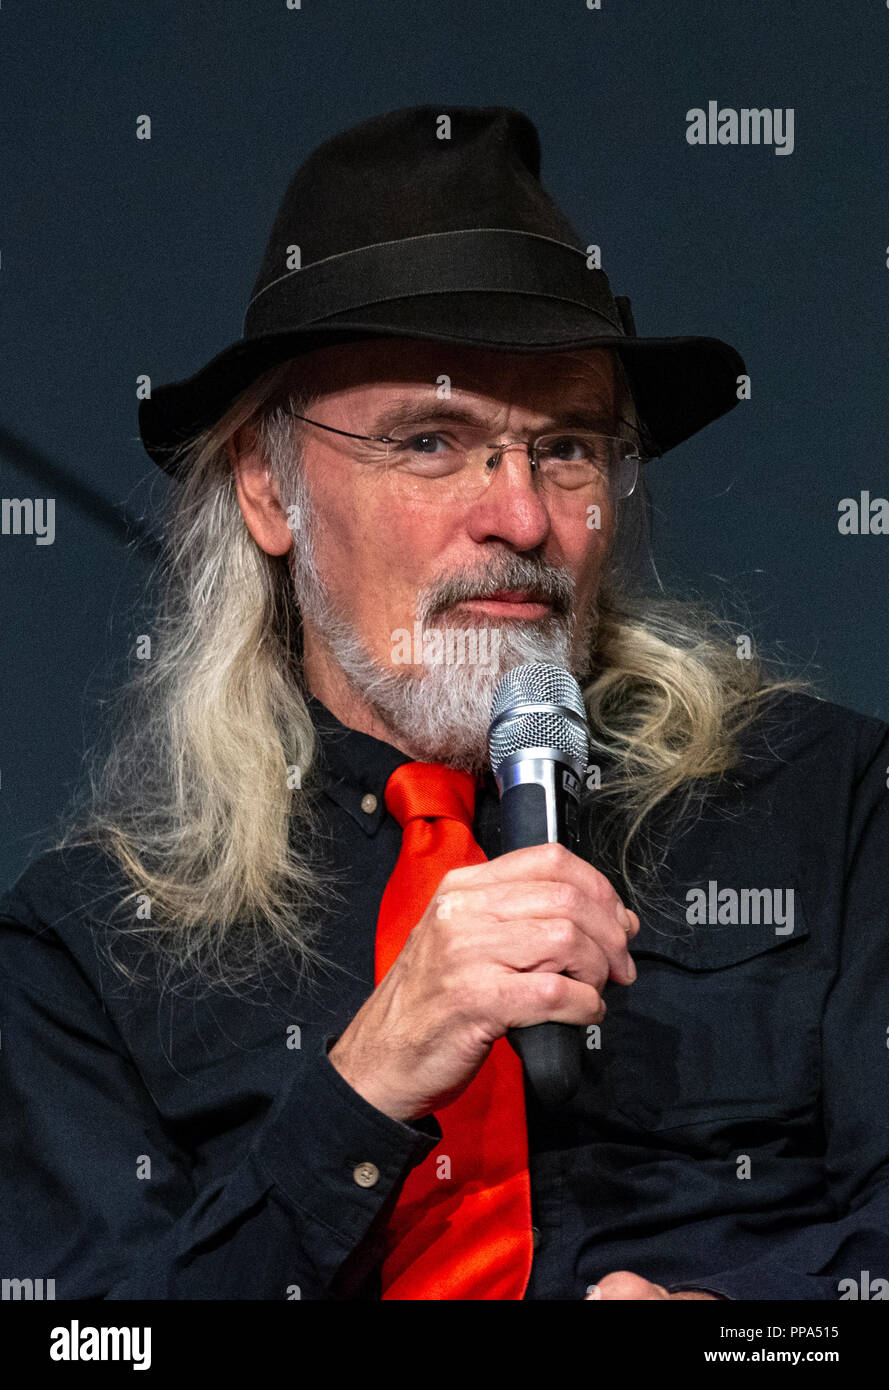 FUERTH, Germany - September 22nd 2018: Toby Philpott (*1946, puppeteer - Jabba the Hut) at Noris Force Con 5a three day star wars fan convention for c - Stock Image